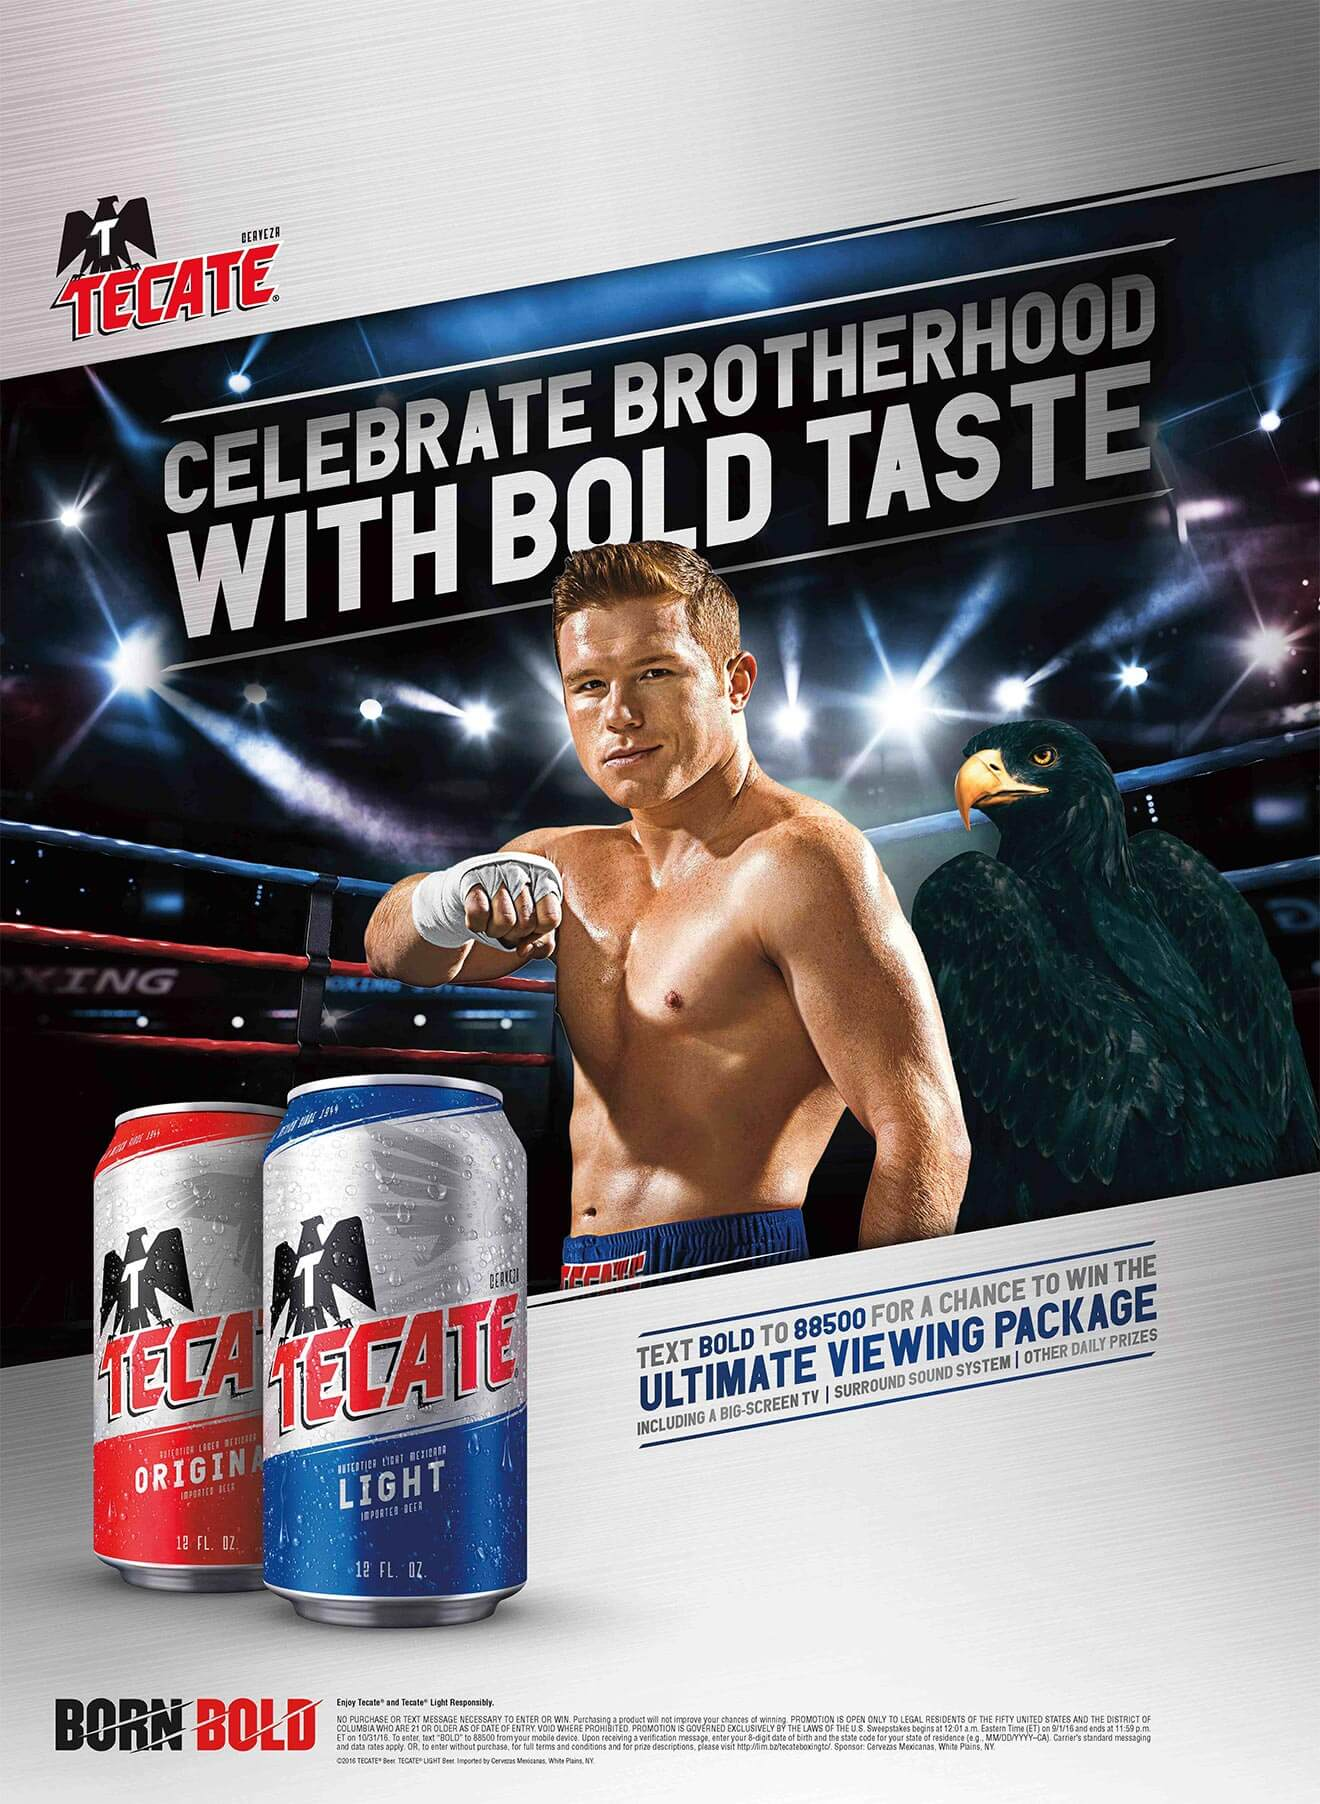 Tecate-weve-got-your-back-campaign poster